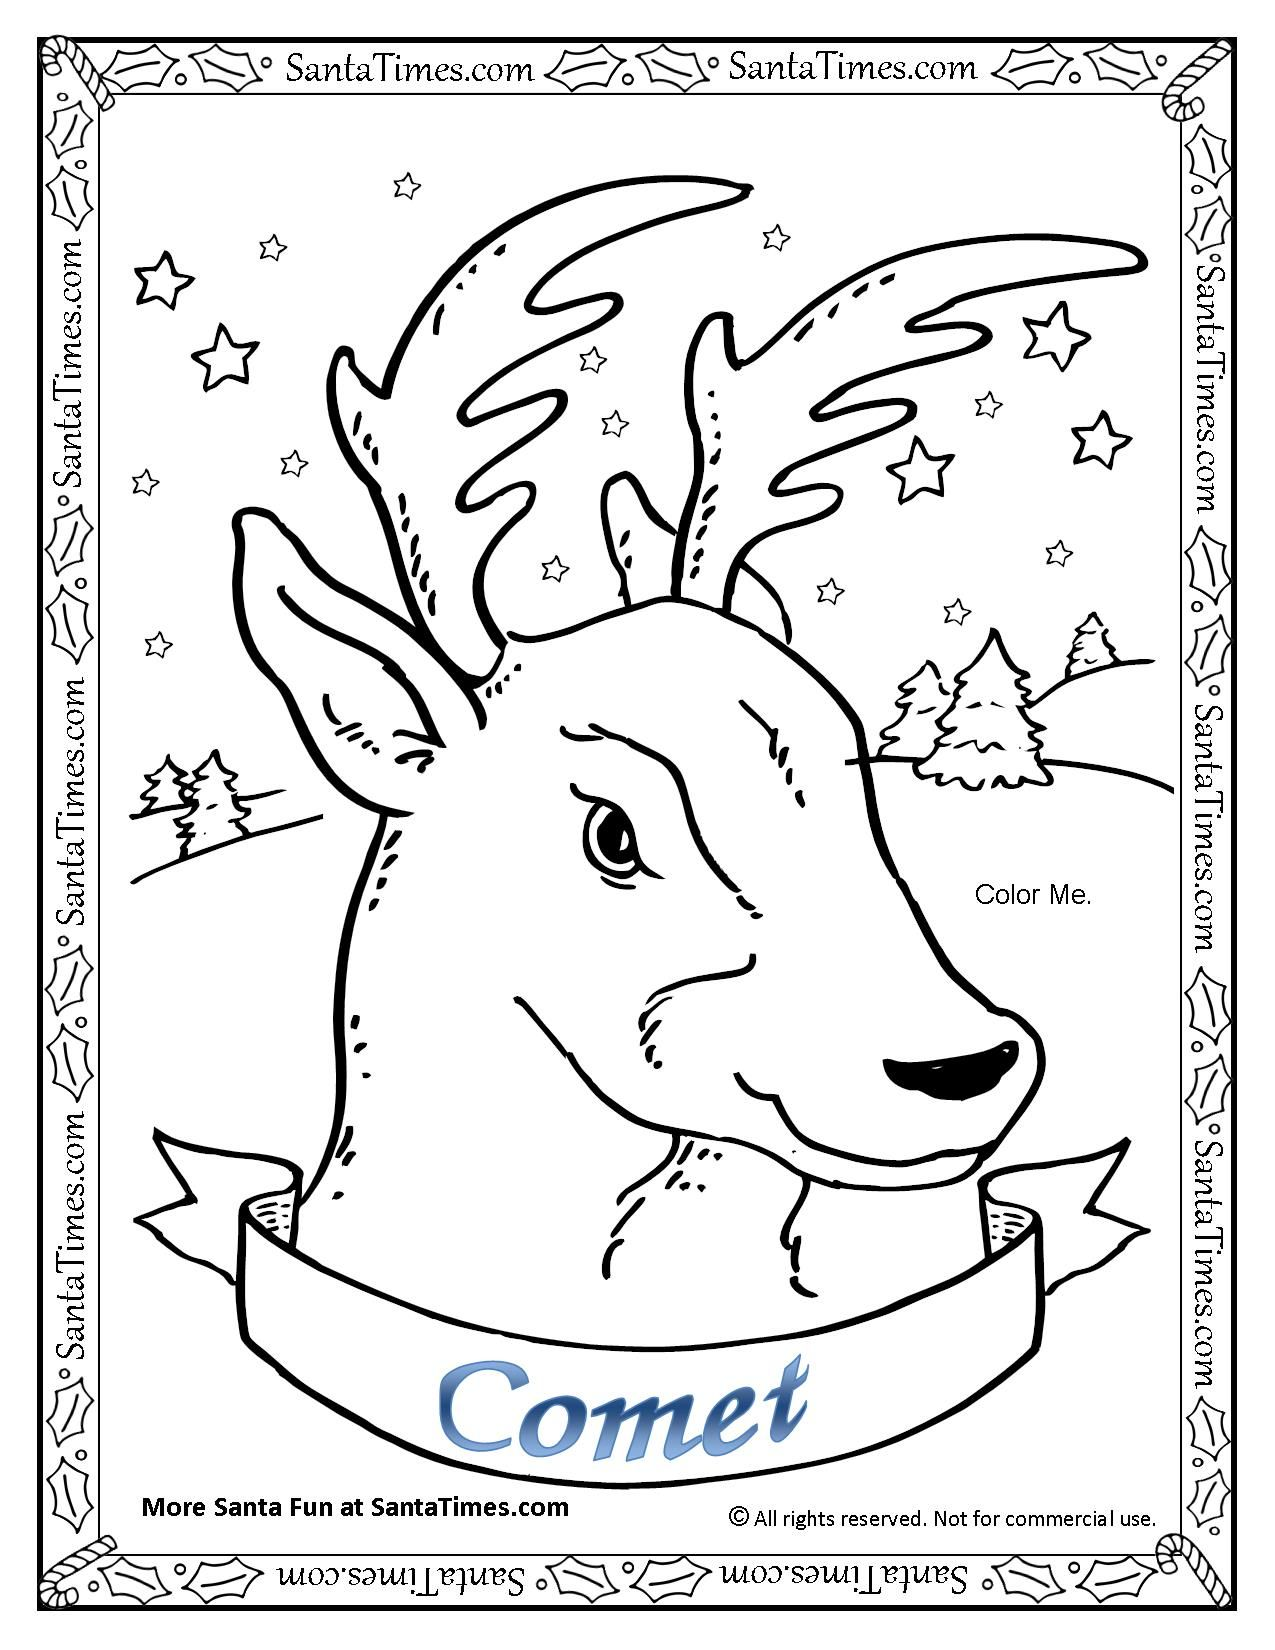 Comet The Reindeer Coloring Page More Christmas Coloring